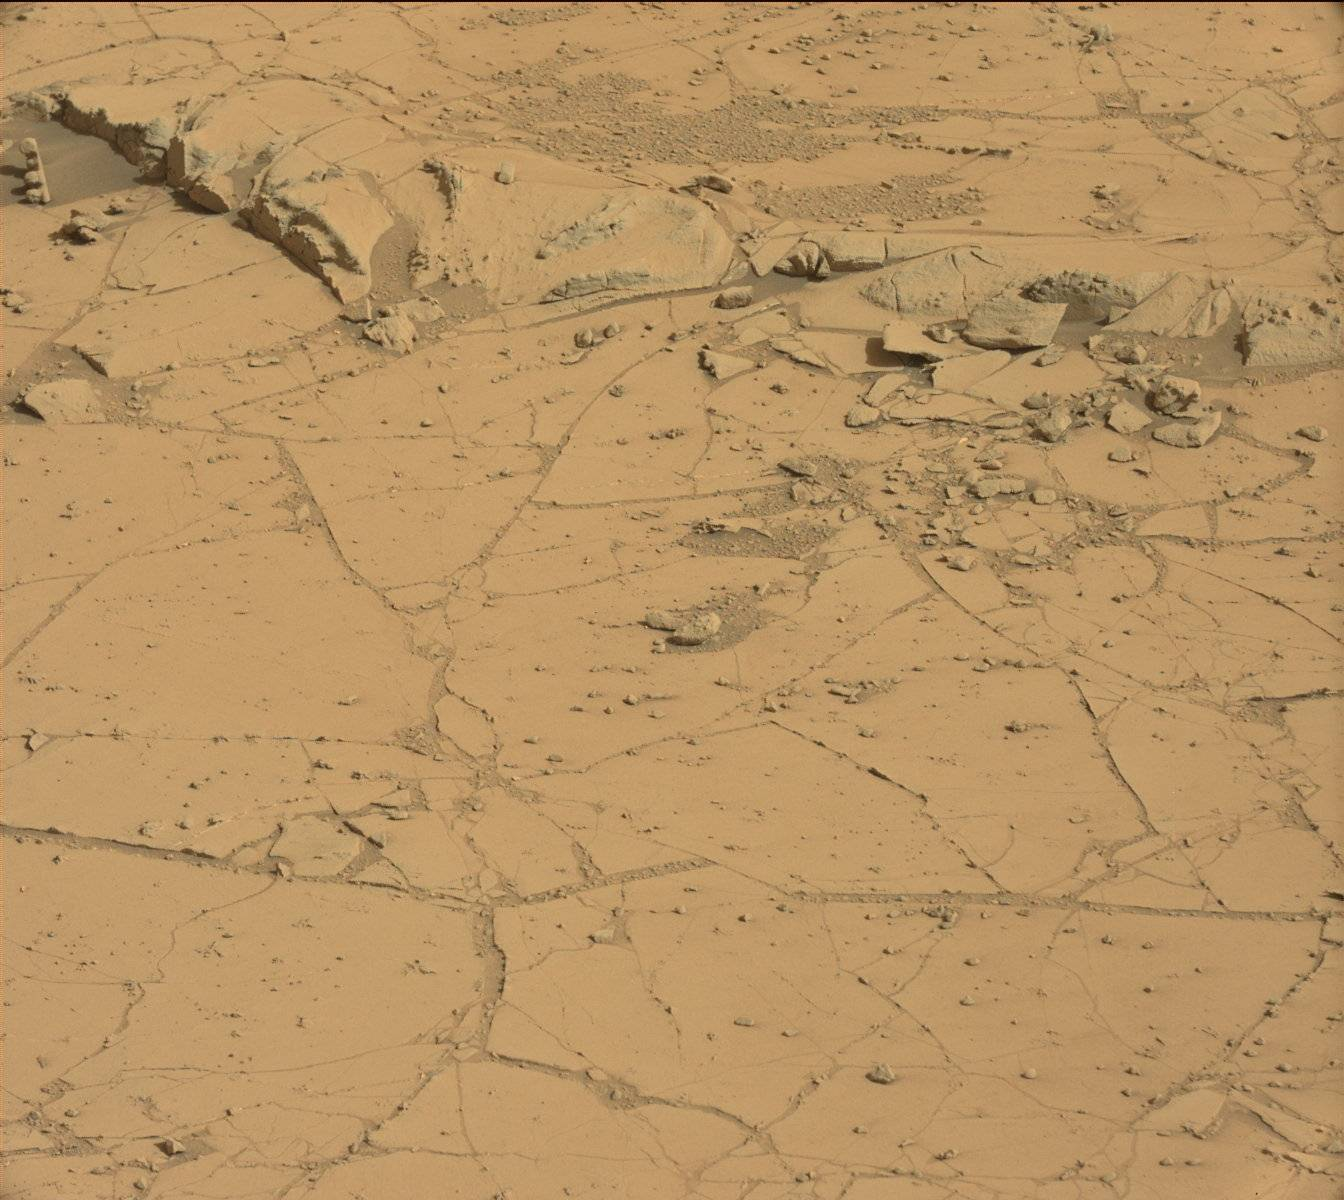 Mastcam 0753 18 sept ML0032370000400001E01_DXXX